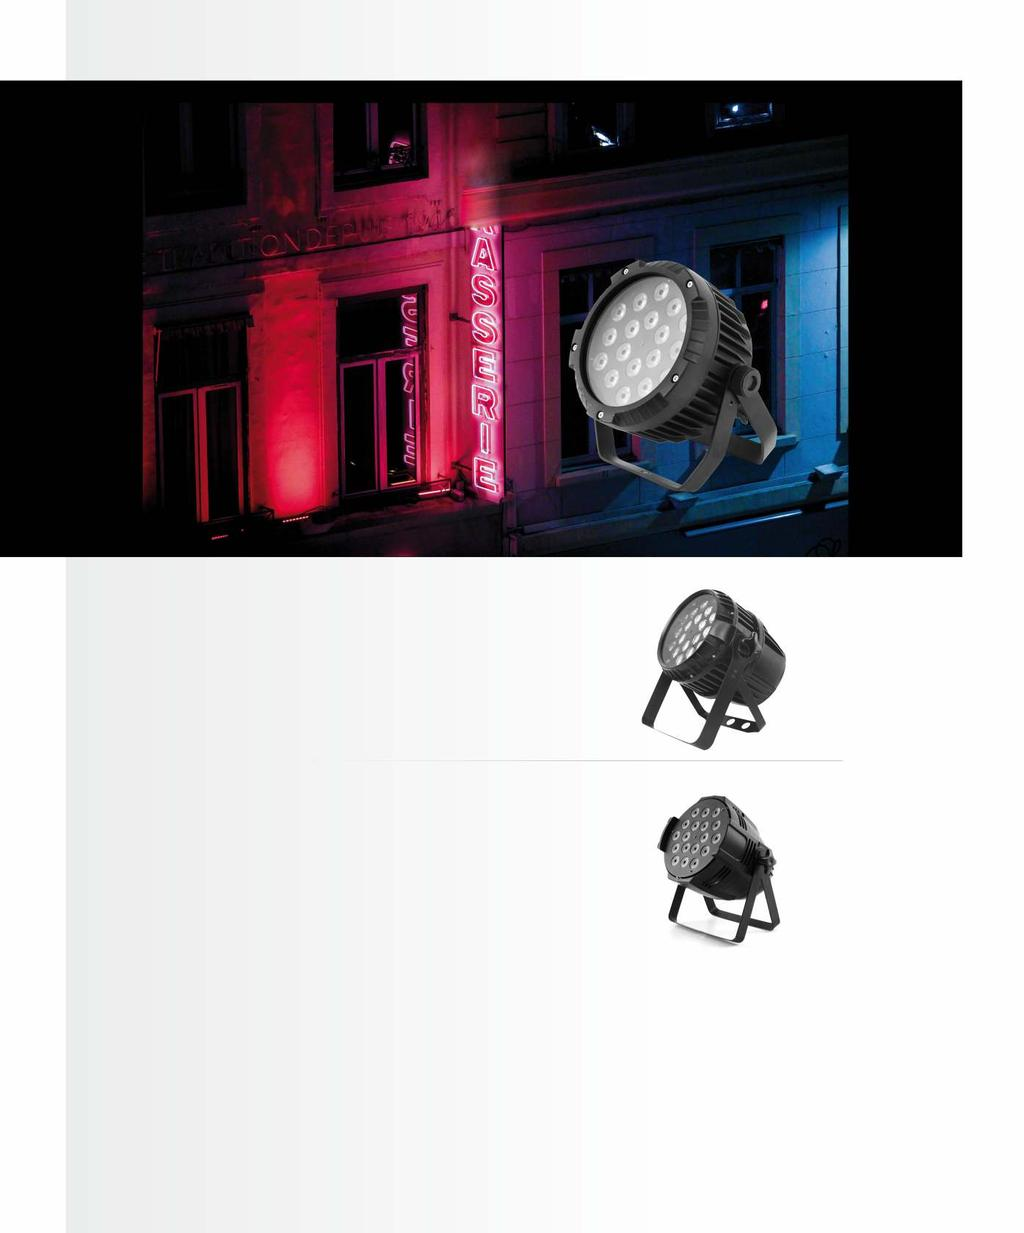 LED PAR 64 IP65 ver.ii 18x10W RGBW 4in1 [F7100310] Designed for outdoor use, for example to illuminate the facades of buildings. It can display sta c colors or change the colors in automa c mode.